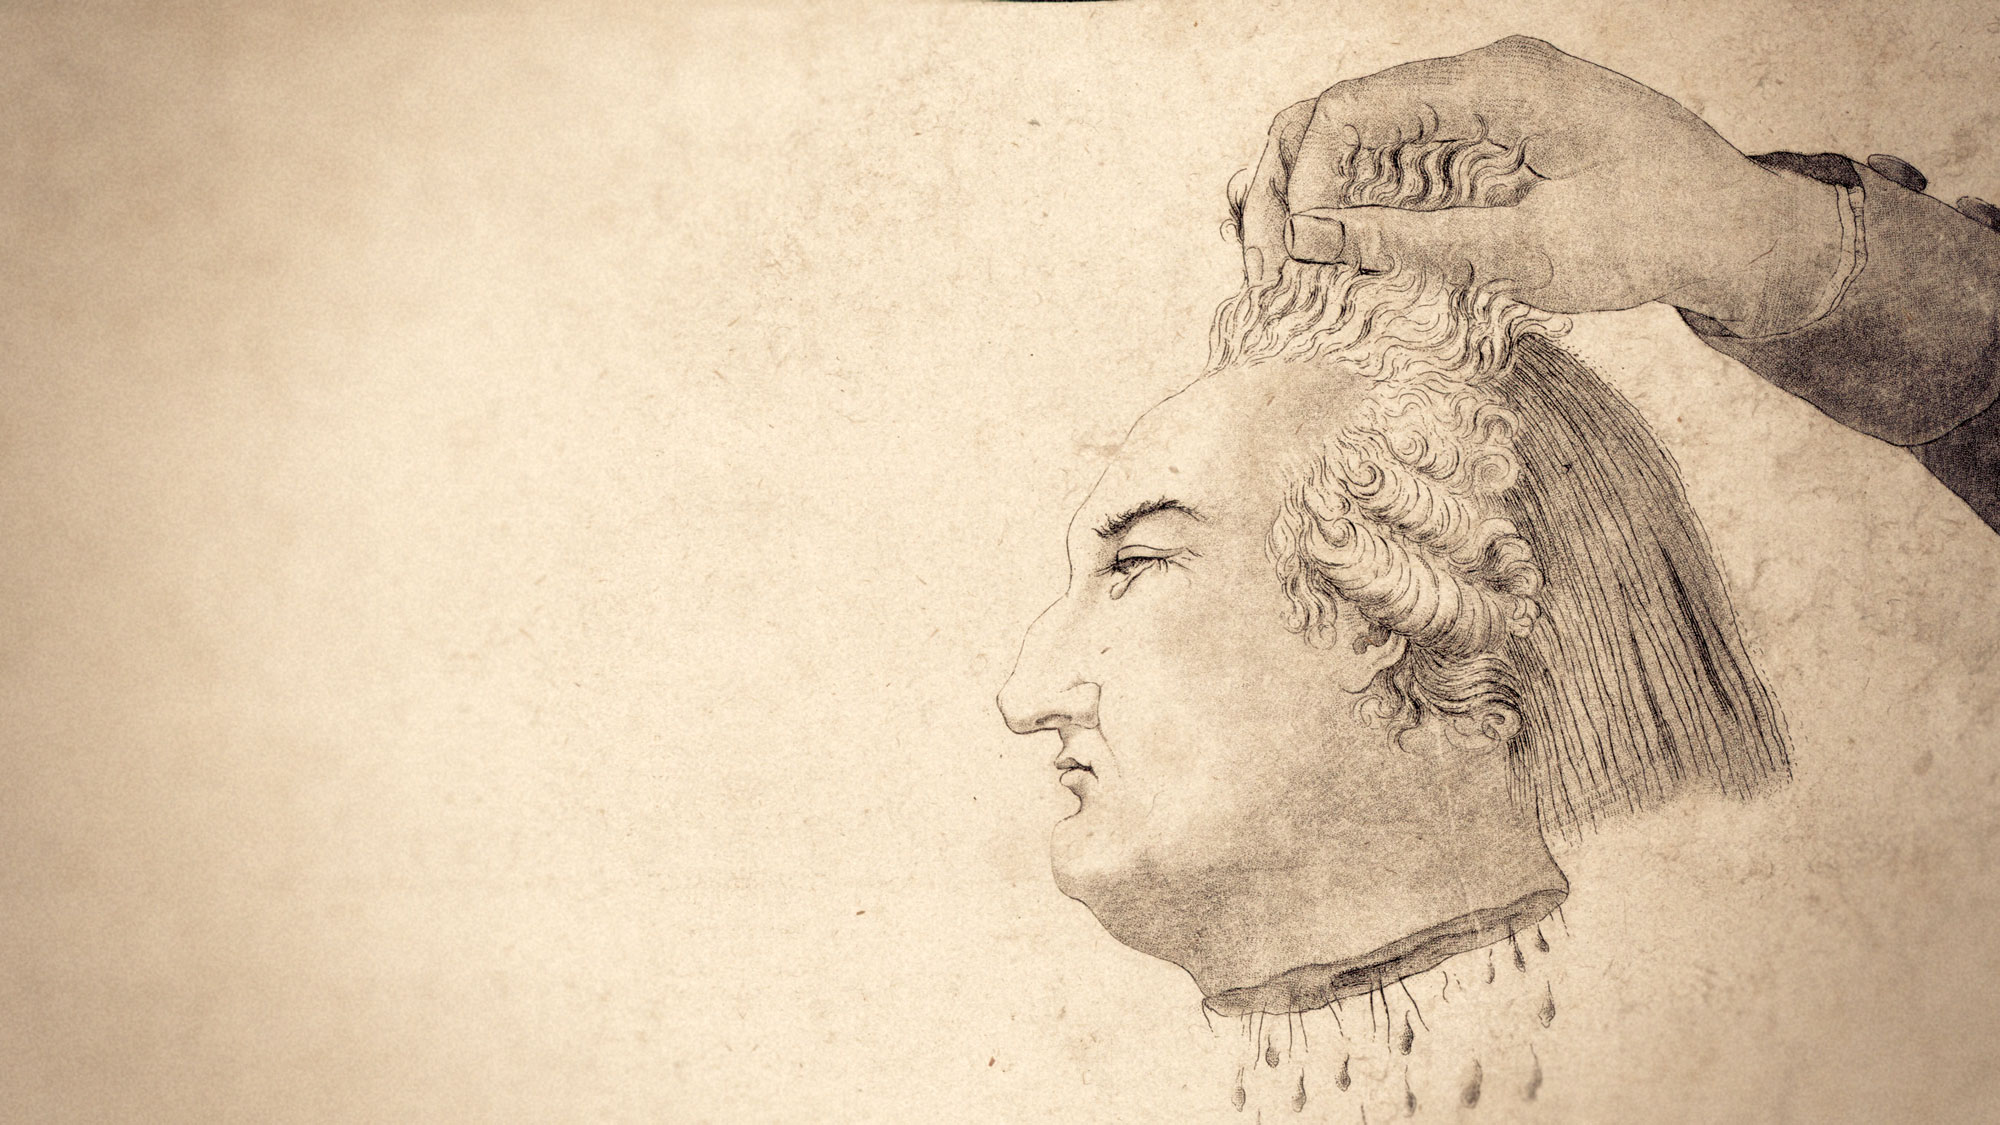 2000x1125 14,000 Drawings Of The French Revolution Posted Online Boing Boing